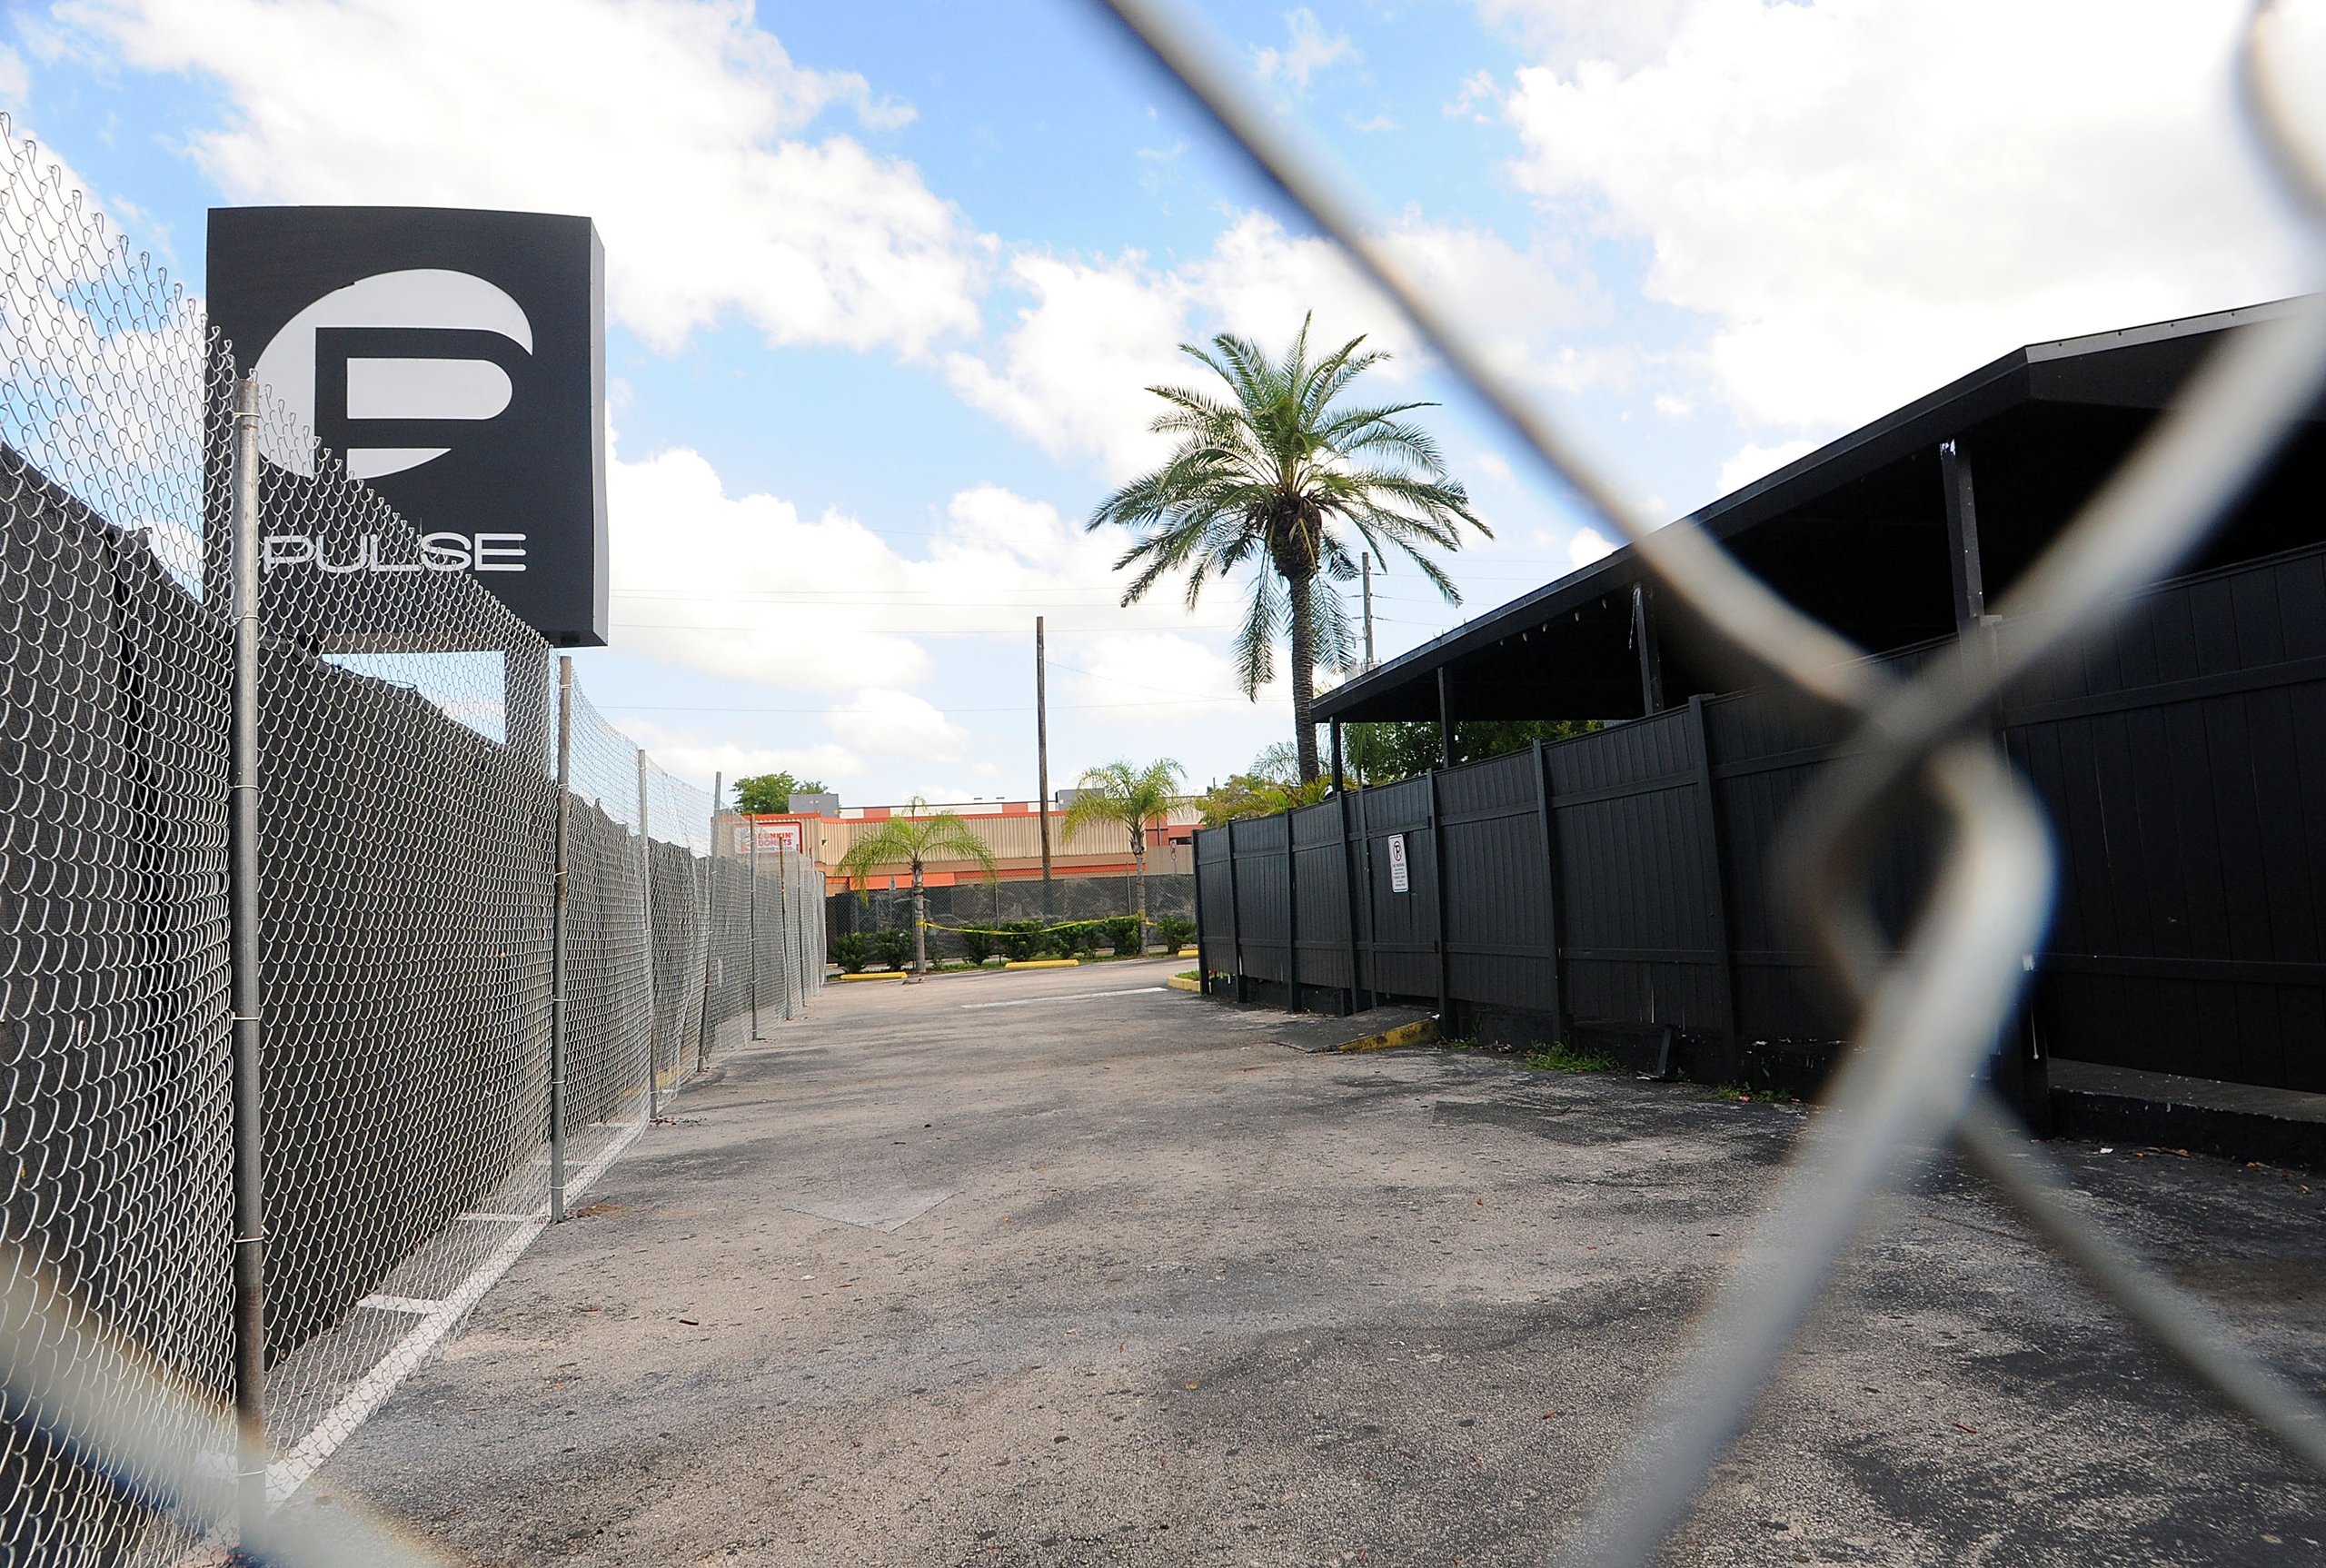 A view of the Pulse nightclub main entrance in Orlando, Florida, on June 21, 2016.